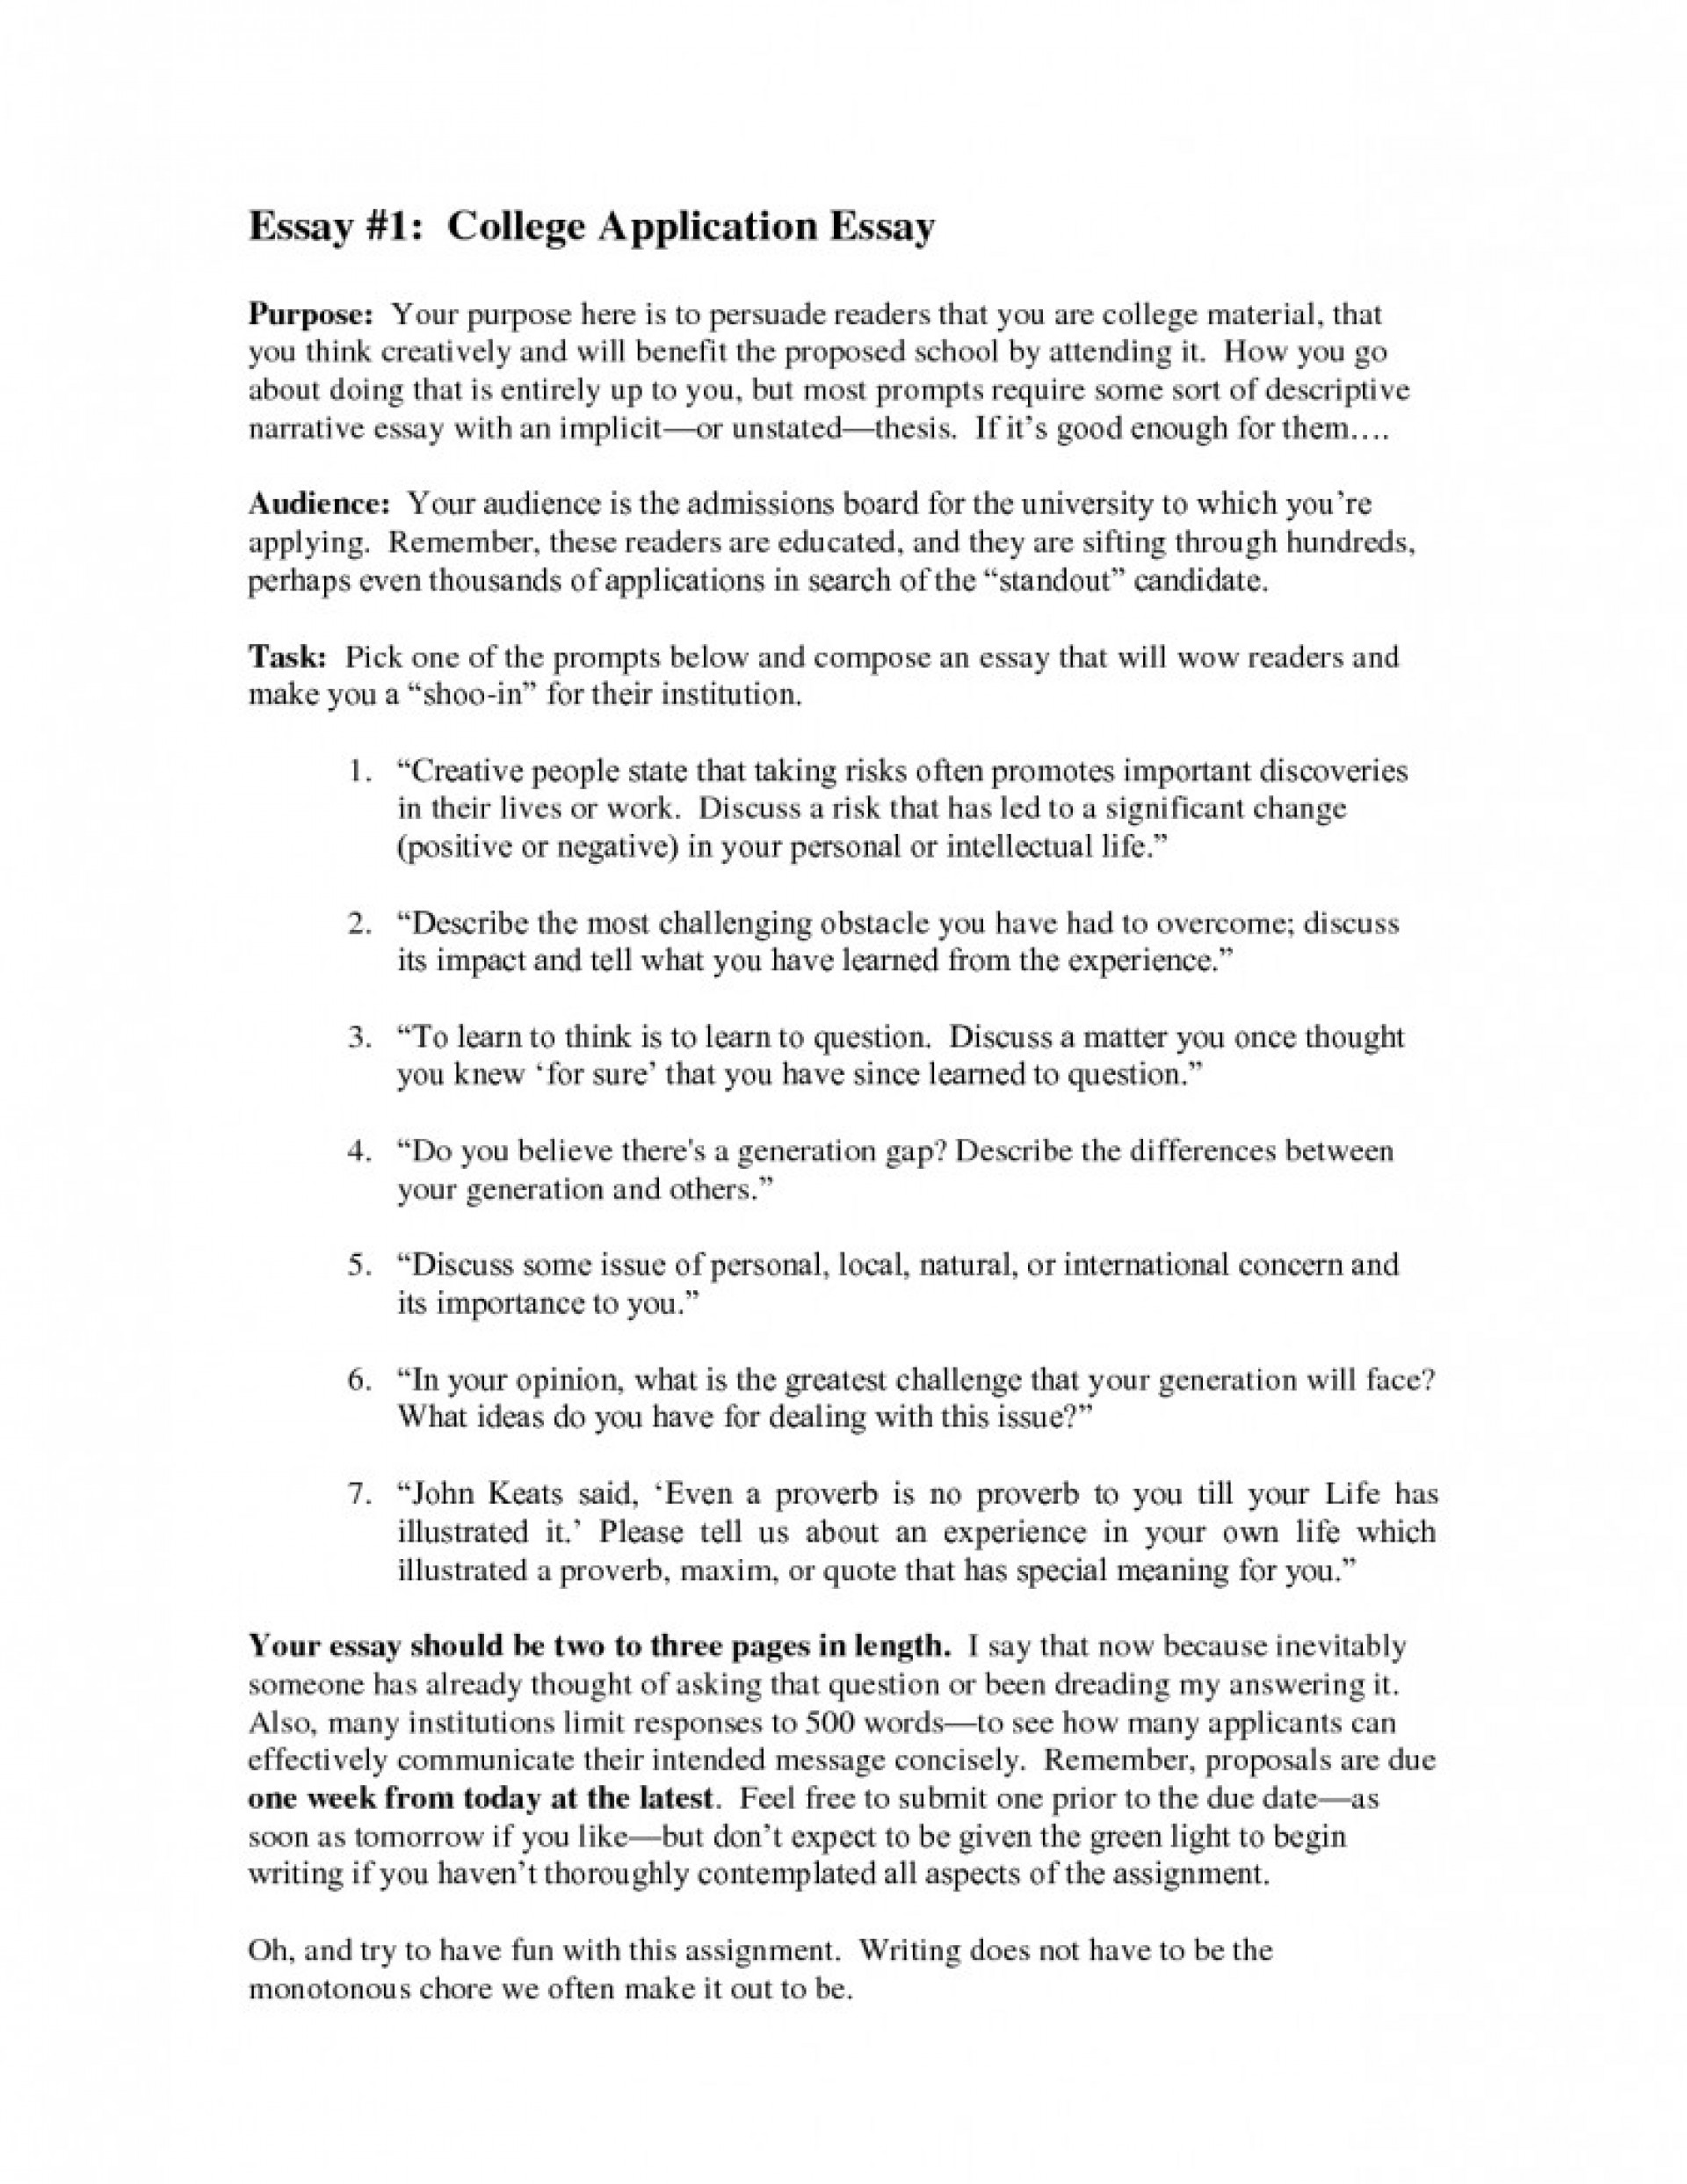 007 College Application Essay 791x1024 What Not To Write About In Frightening Things Your Admissions 1920